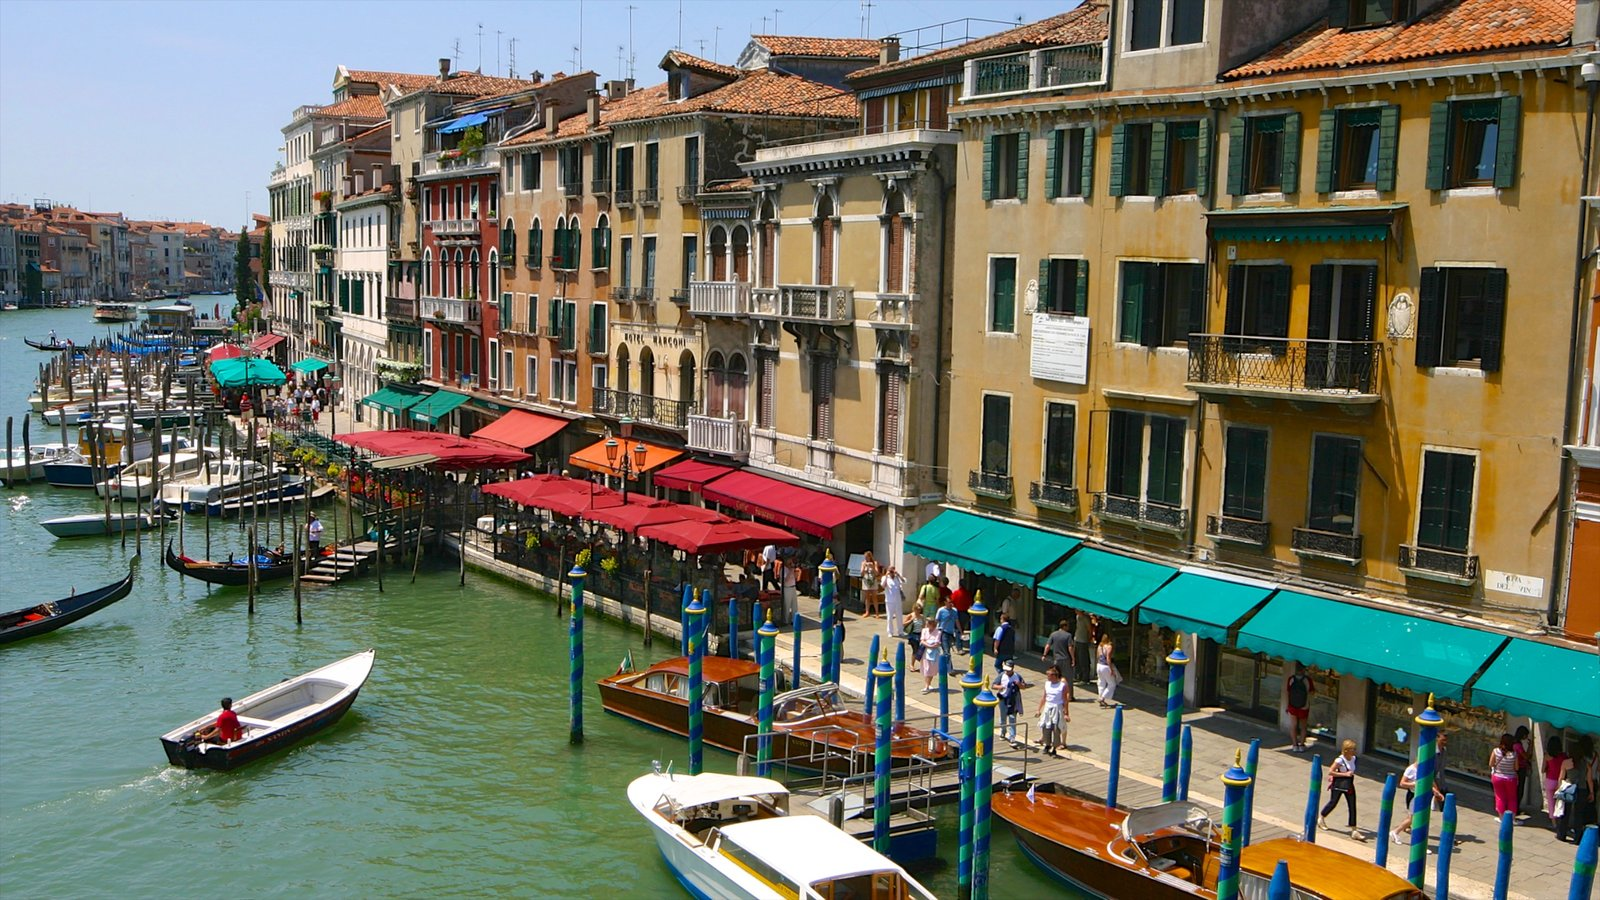 Grand Canal featuring street scenes and boating